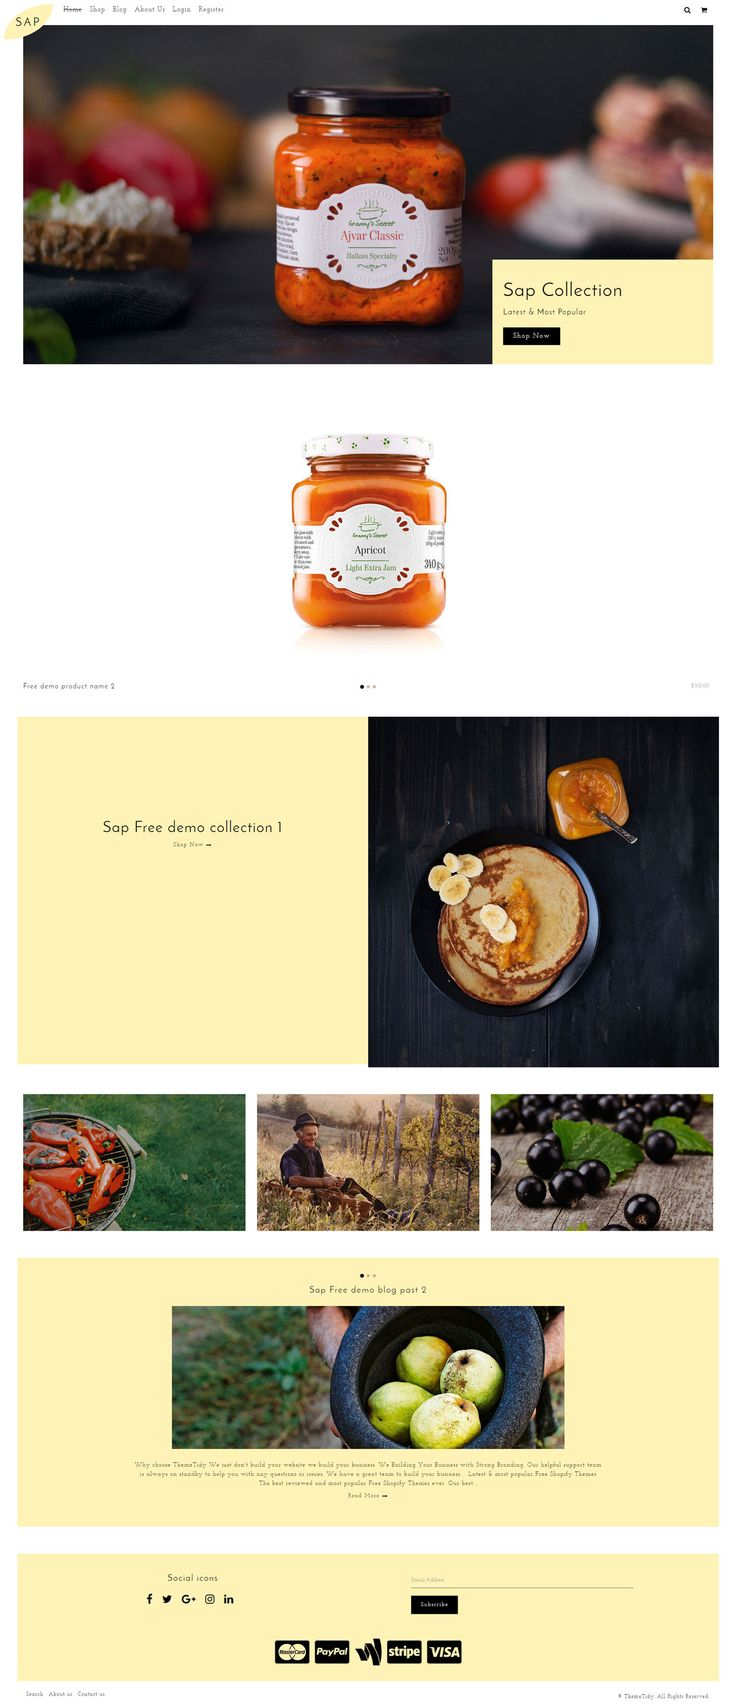 Sap – Food Store Responsive Shopify Theme Download Link: https://www.themetidy.com/item/sap-food-store-responsive-shopify-theme/ #jam #jelly #bread #foodshopifythemes #drinkshopifythemes #cafesshopifythemes #restaurantsshopifythemes #fresh #event #party #tasty #healthy #order #recipes #delicious #bar #tablebooking #cookingstore #eat #chef #organicshop #delivery #pub #menu #bootstrapshopifythemes #ecommerceshopifythemes #responsiveshopifythemes